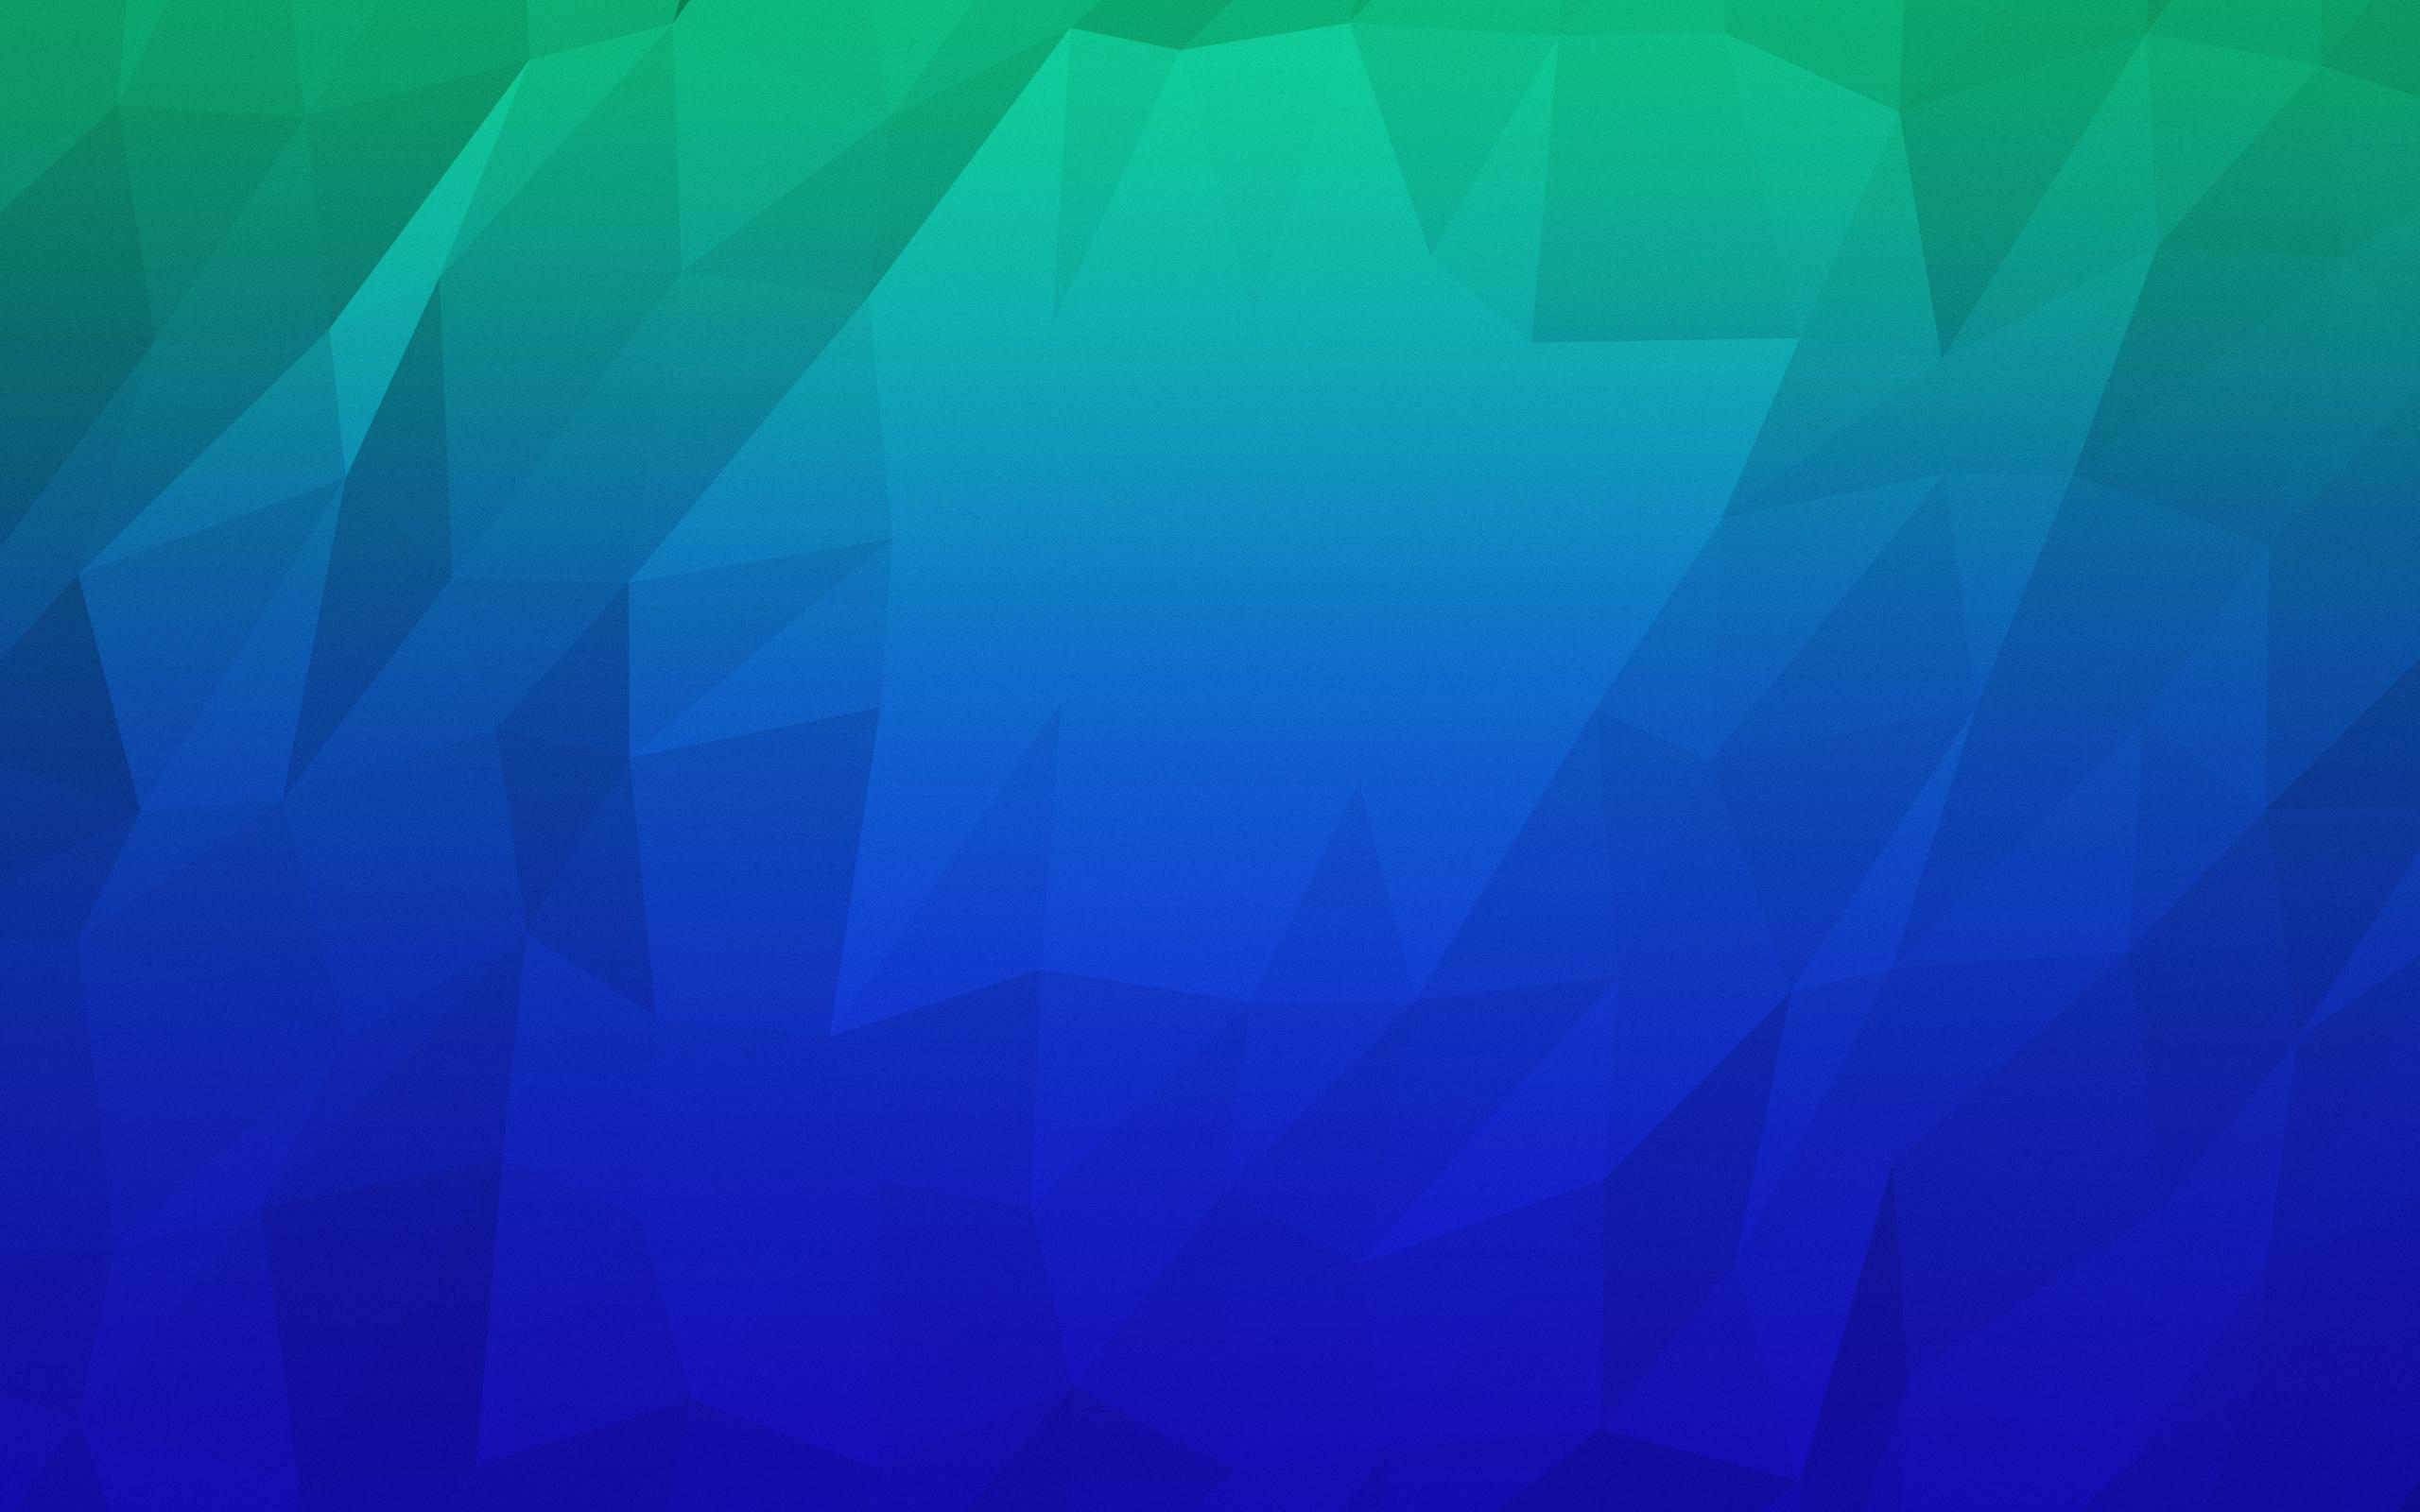 Free Download Blue Less Green Color Abstract Surface